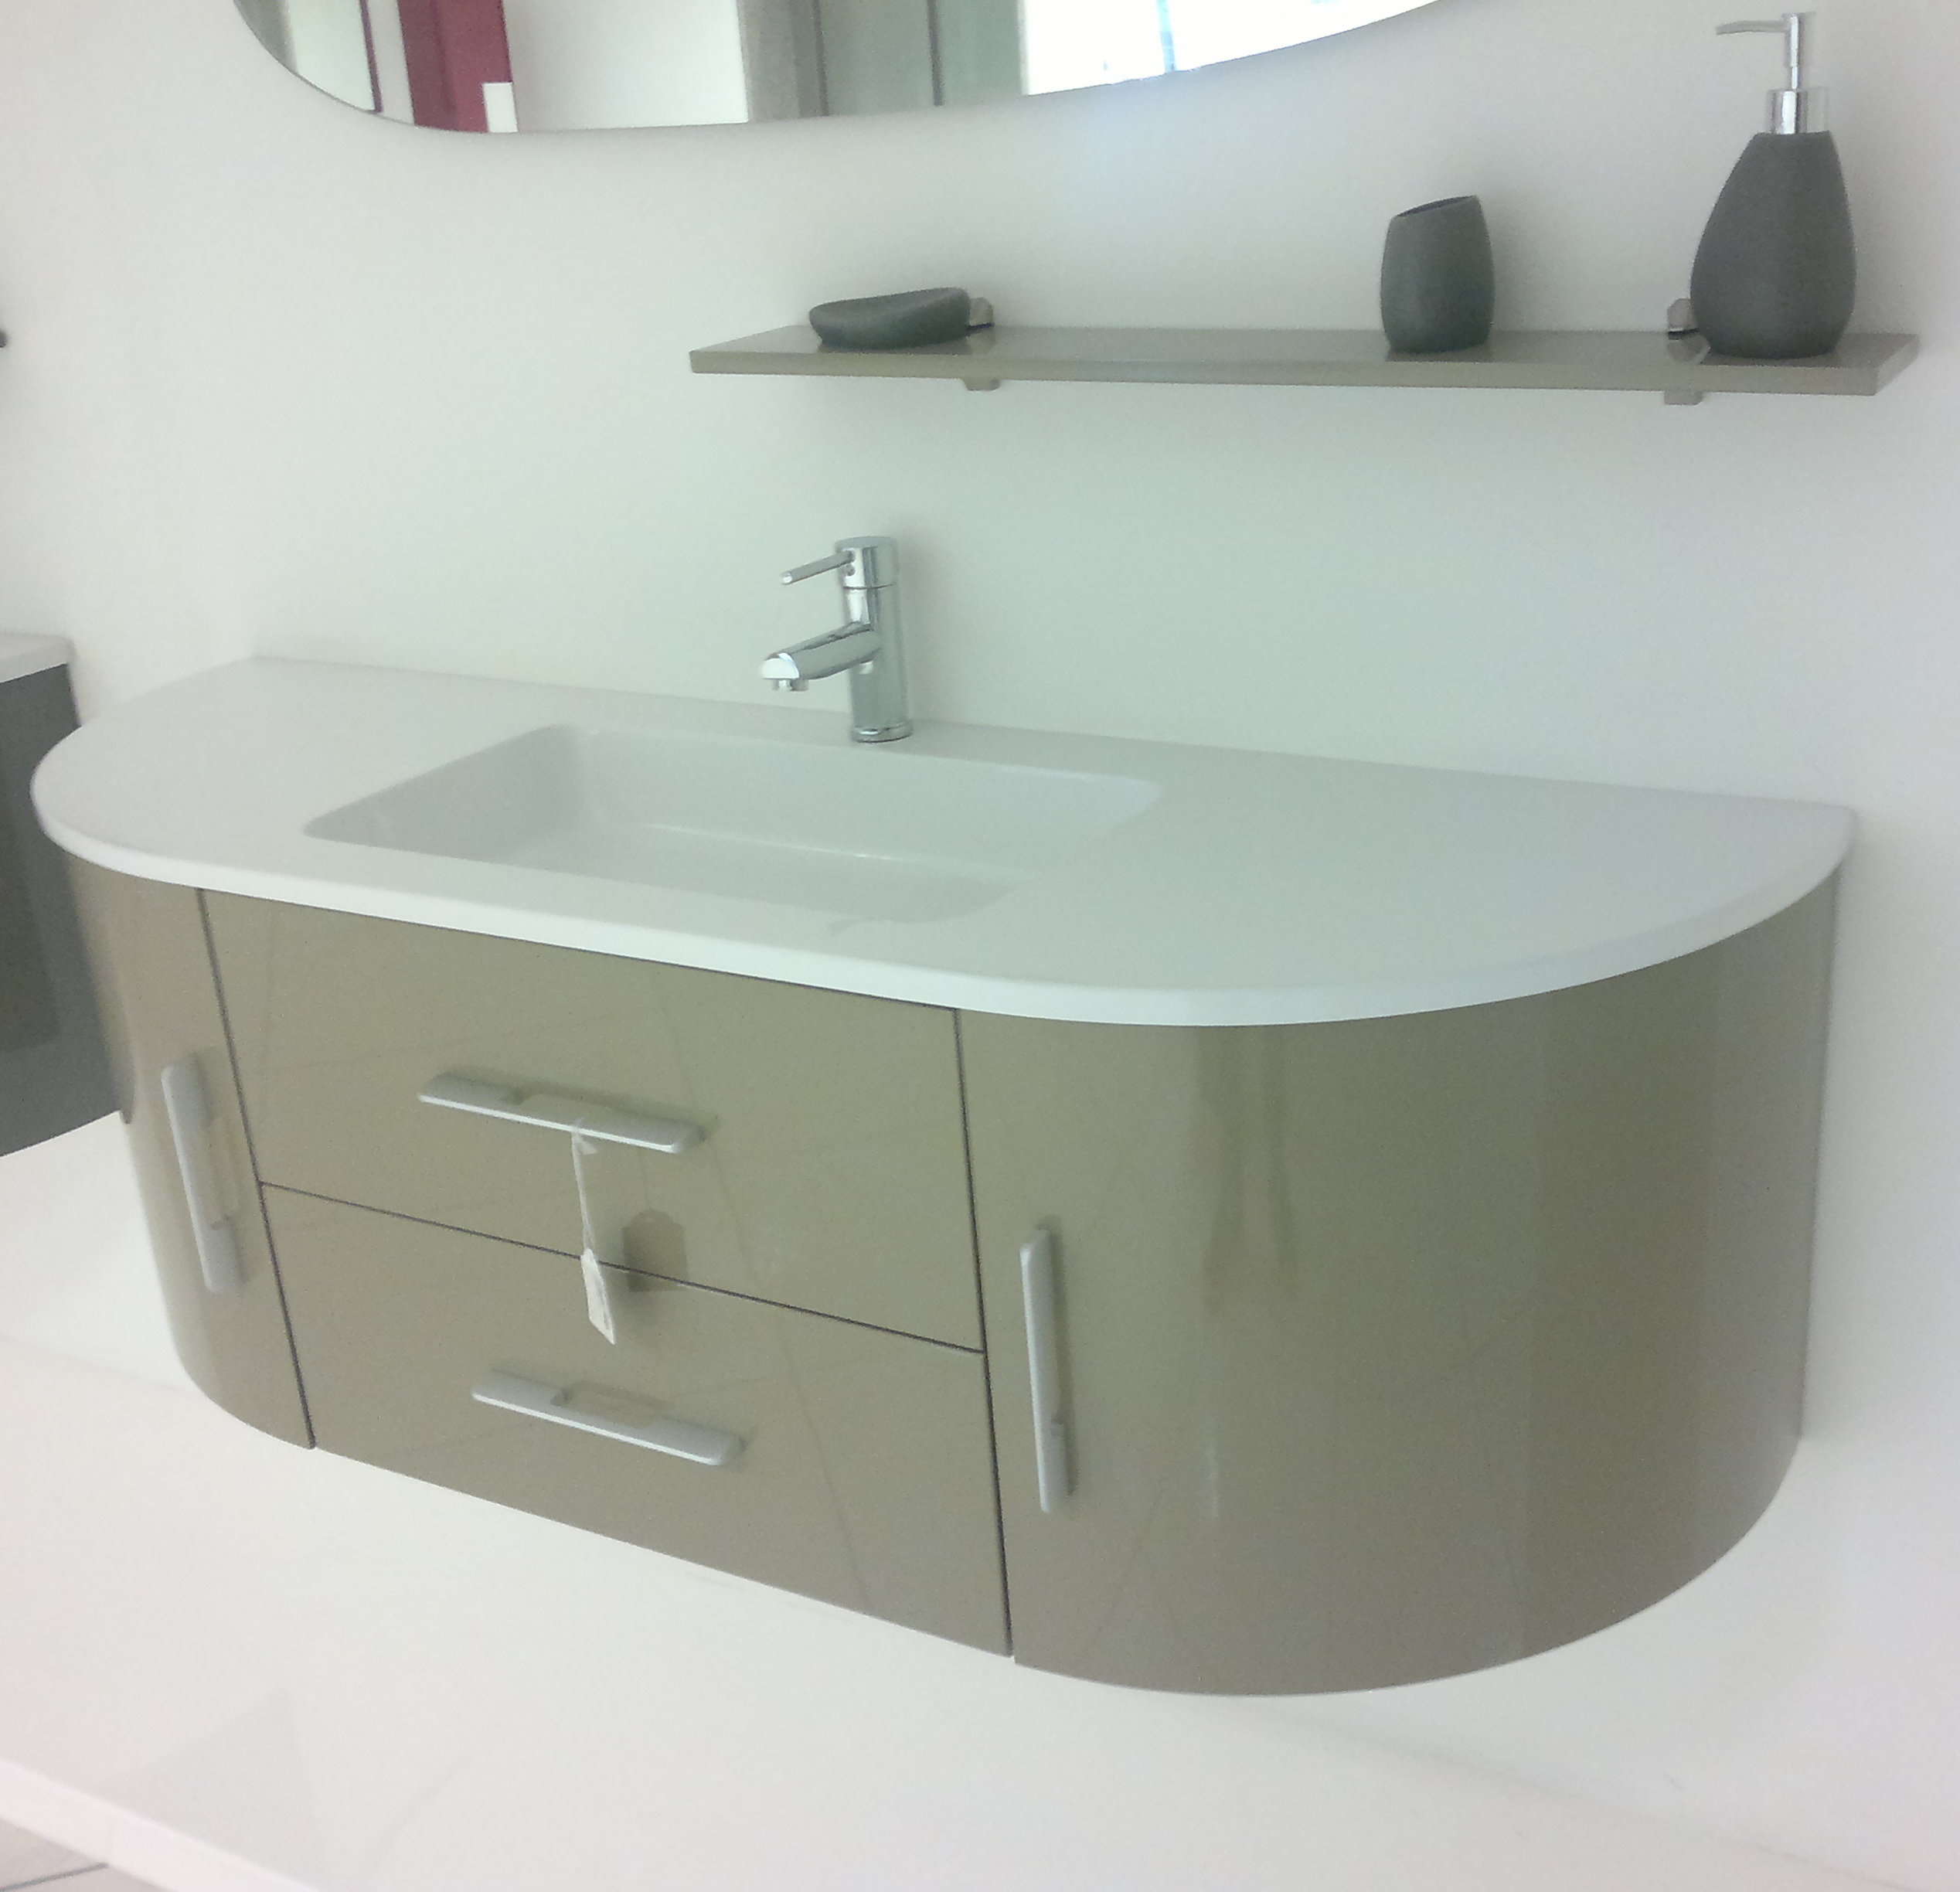 https://www.arredobagnoitalia.com/images/stories/virtuemart/product/arredo_bagno_red_primaria.jpg